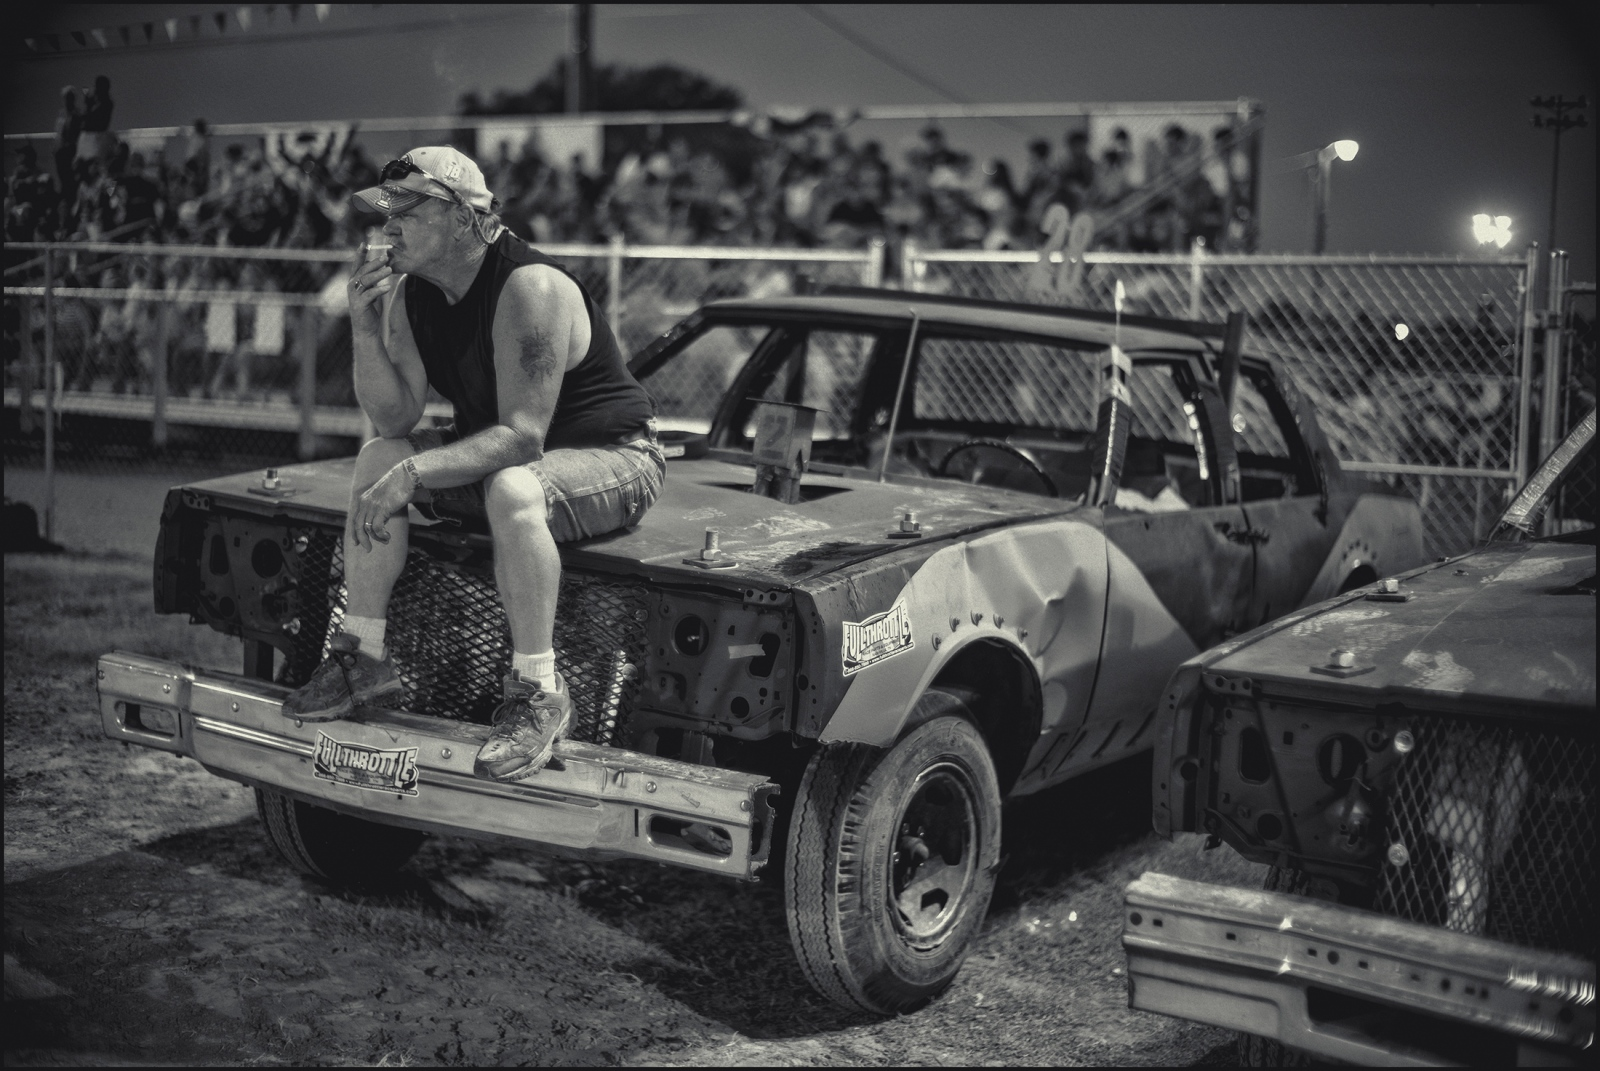 Behind scenes, county fair outside Nashville, TN, demolition derby. 2016.